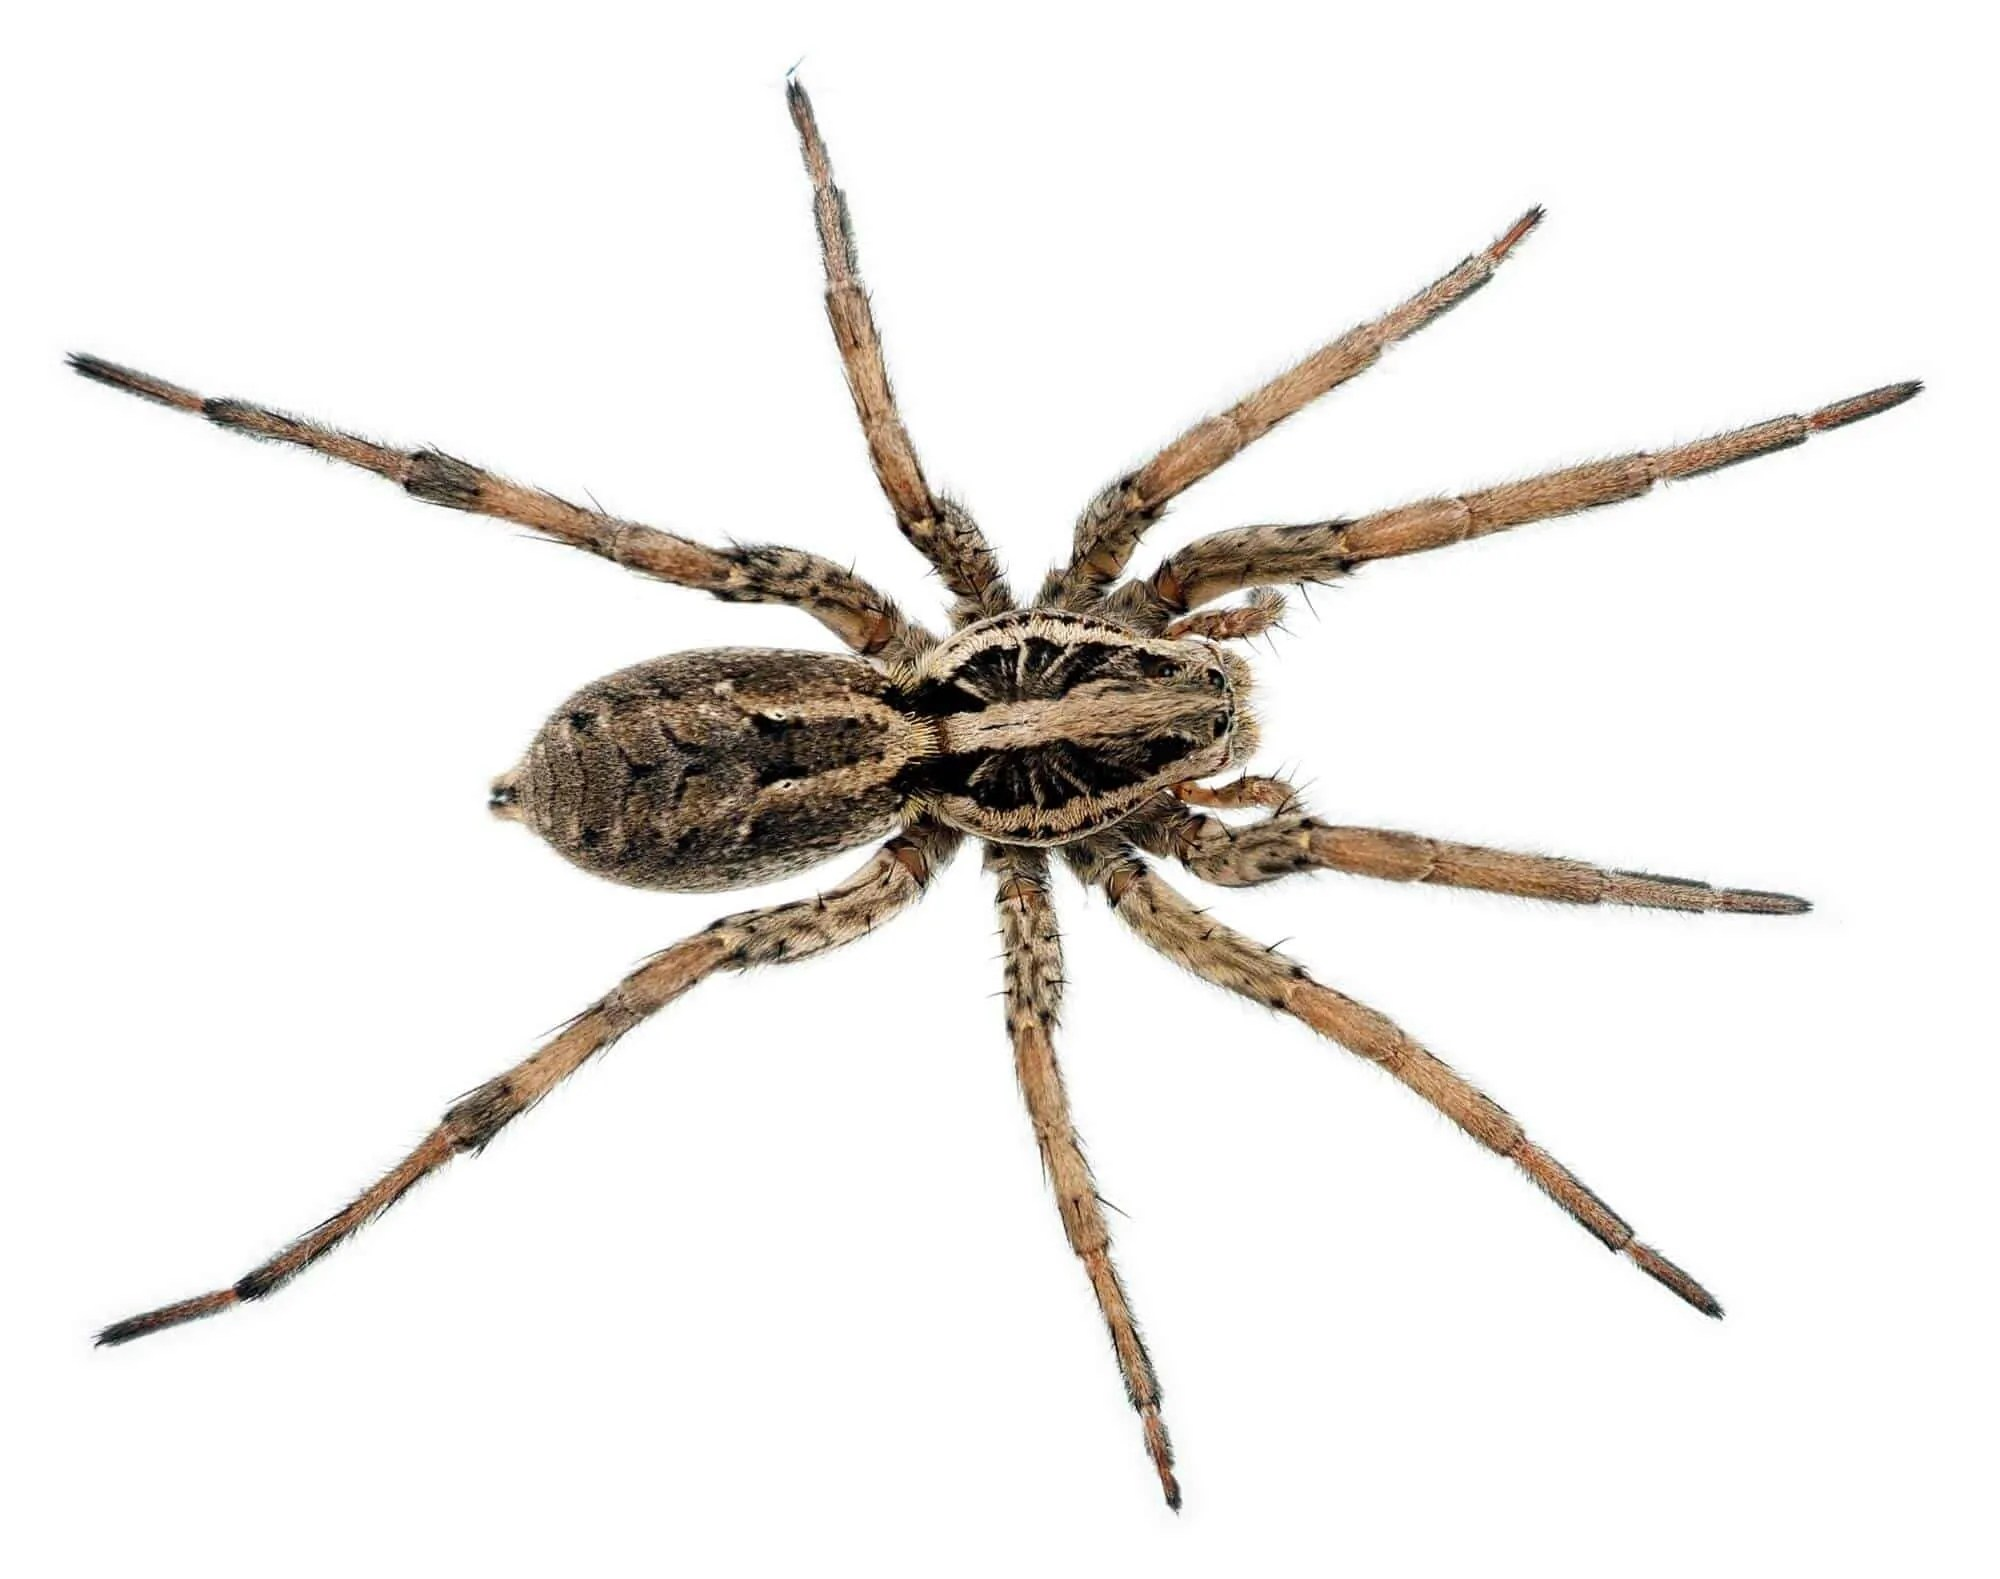 Spider Bite Guide  Know Your Spiders!  Prepper's Will